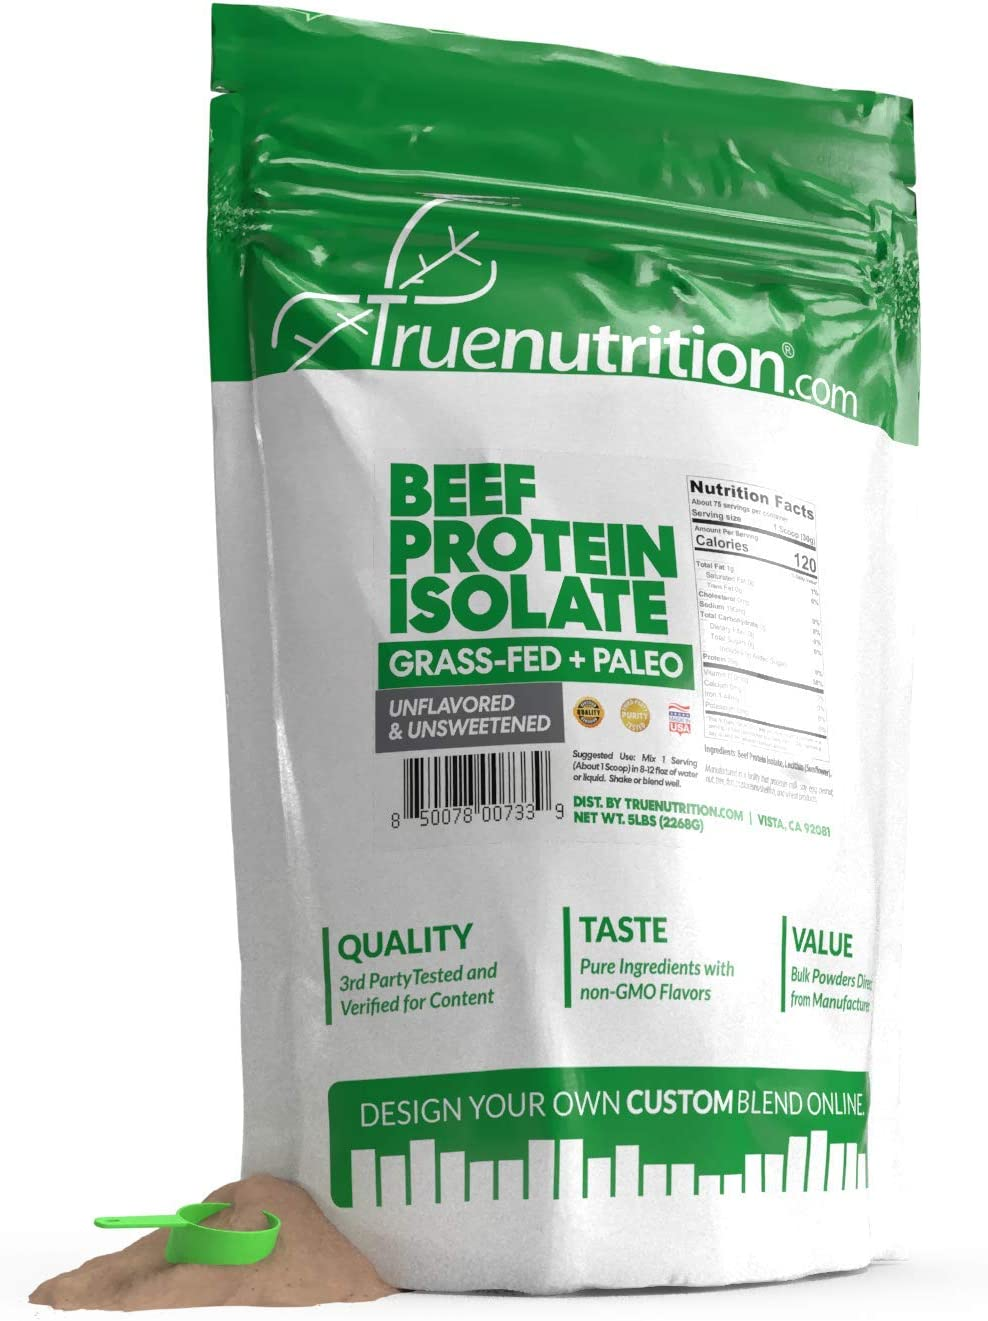 5LBS Unflavored Grass Fed Beef Protein Powder Isolate - Paleo, Keto, Carnivore, Sugar-Free, Lactose-Free - Customize Your Protein with Two Free TrueBoost or TrueFlavor Protein Shake Enhancements